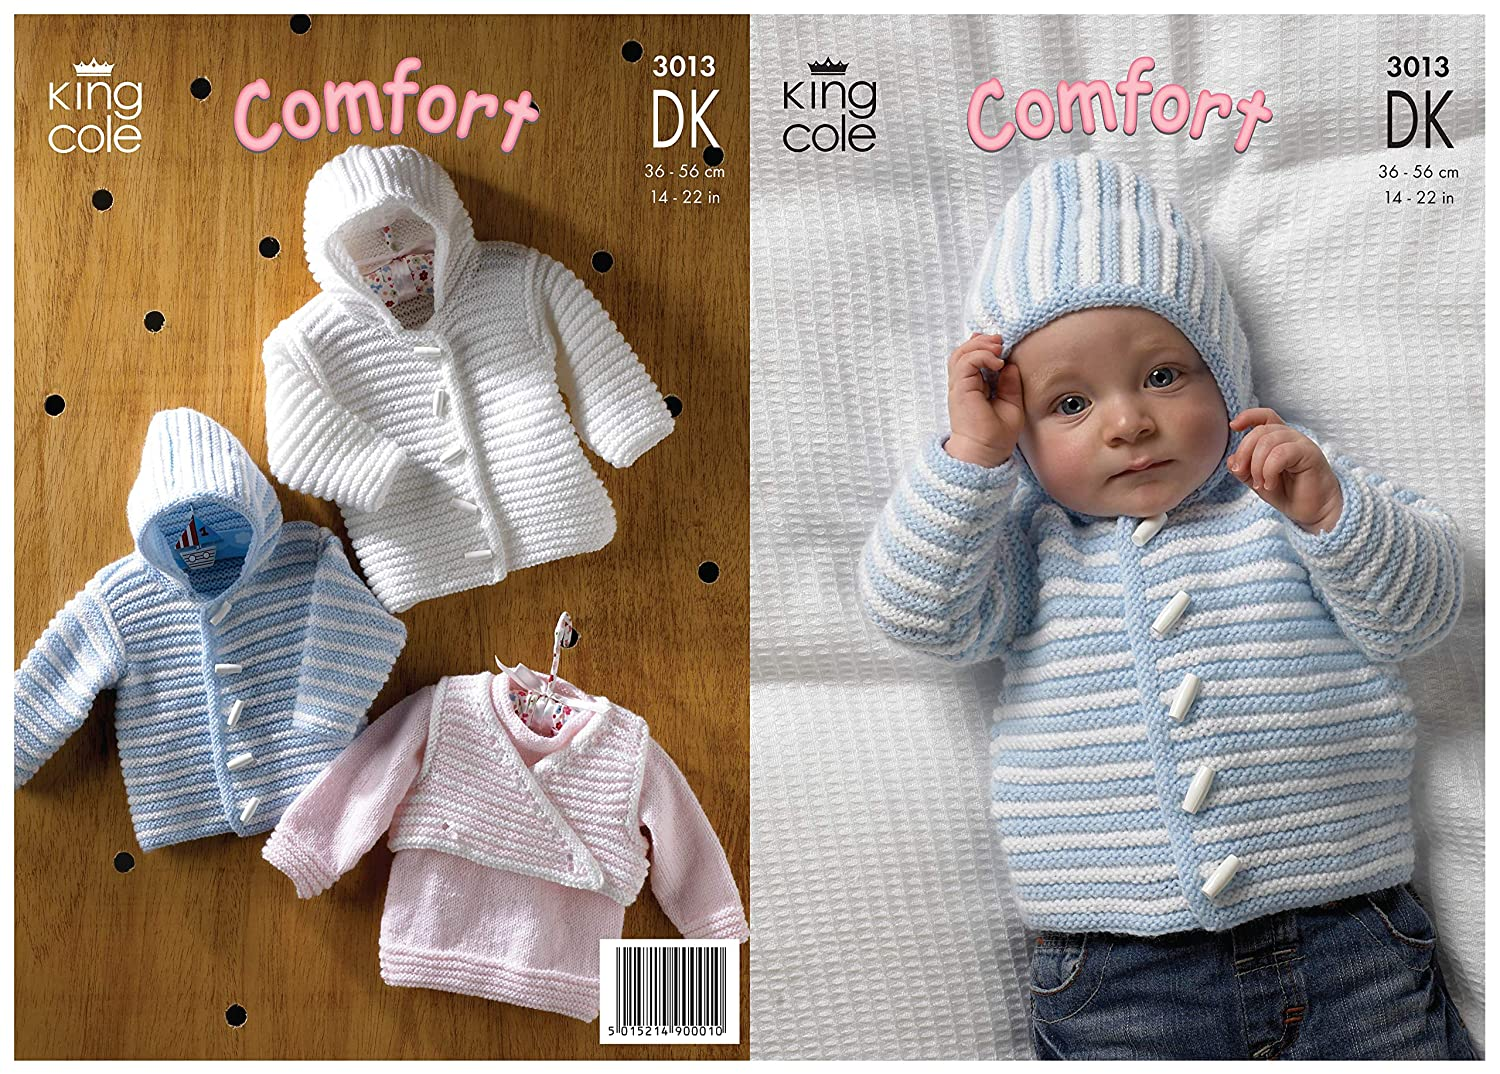 b2c3d4f72 Amazon.com  King Cole Double Knitting DK Pattern 3013 Baby Striped Sweater  Hooded Jacket   Body Warmer  Home   Kitchen